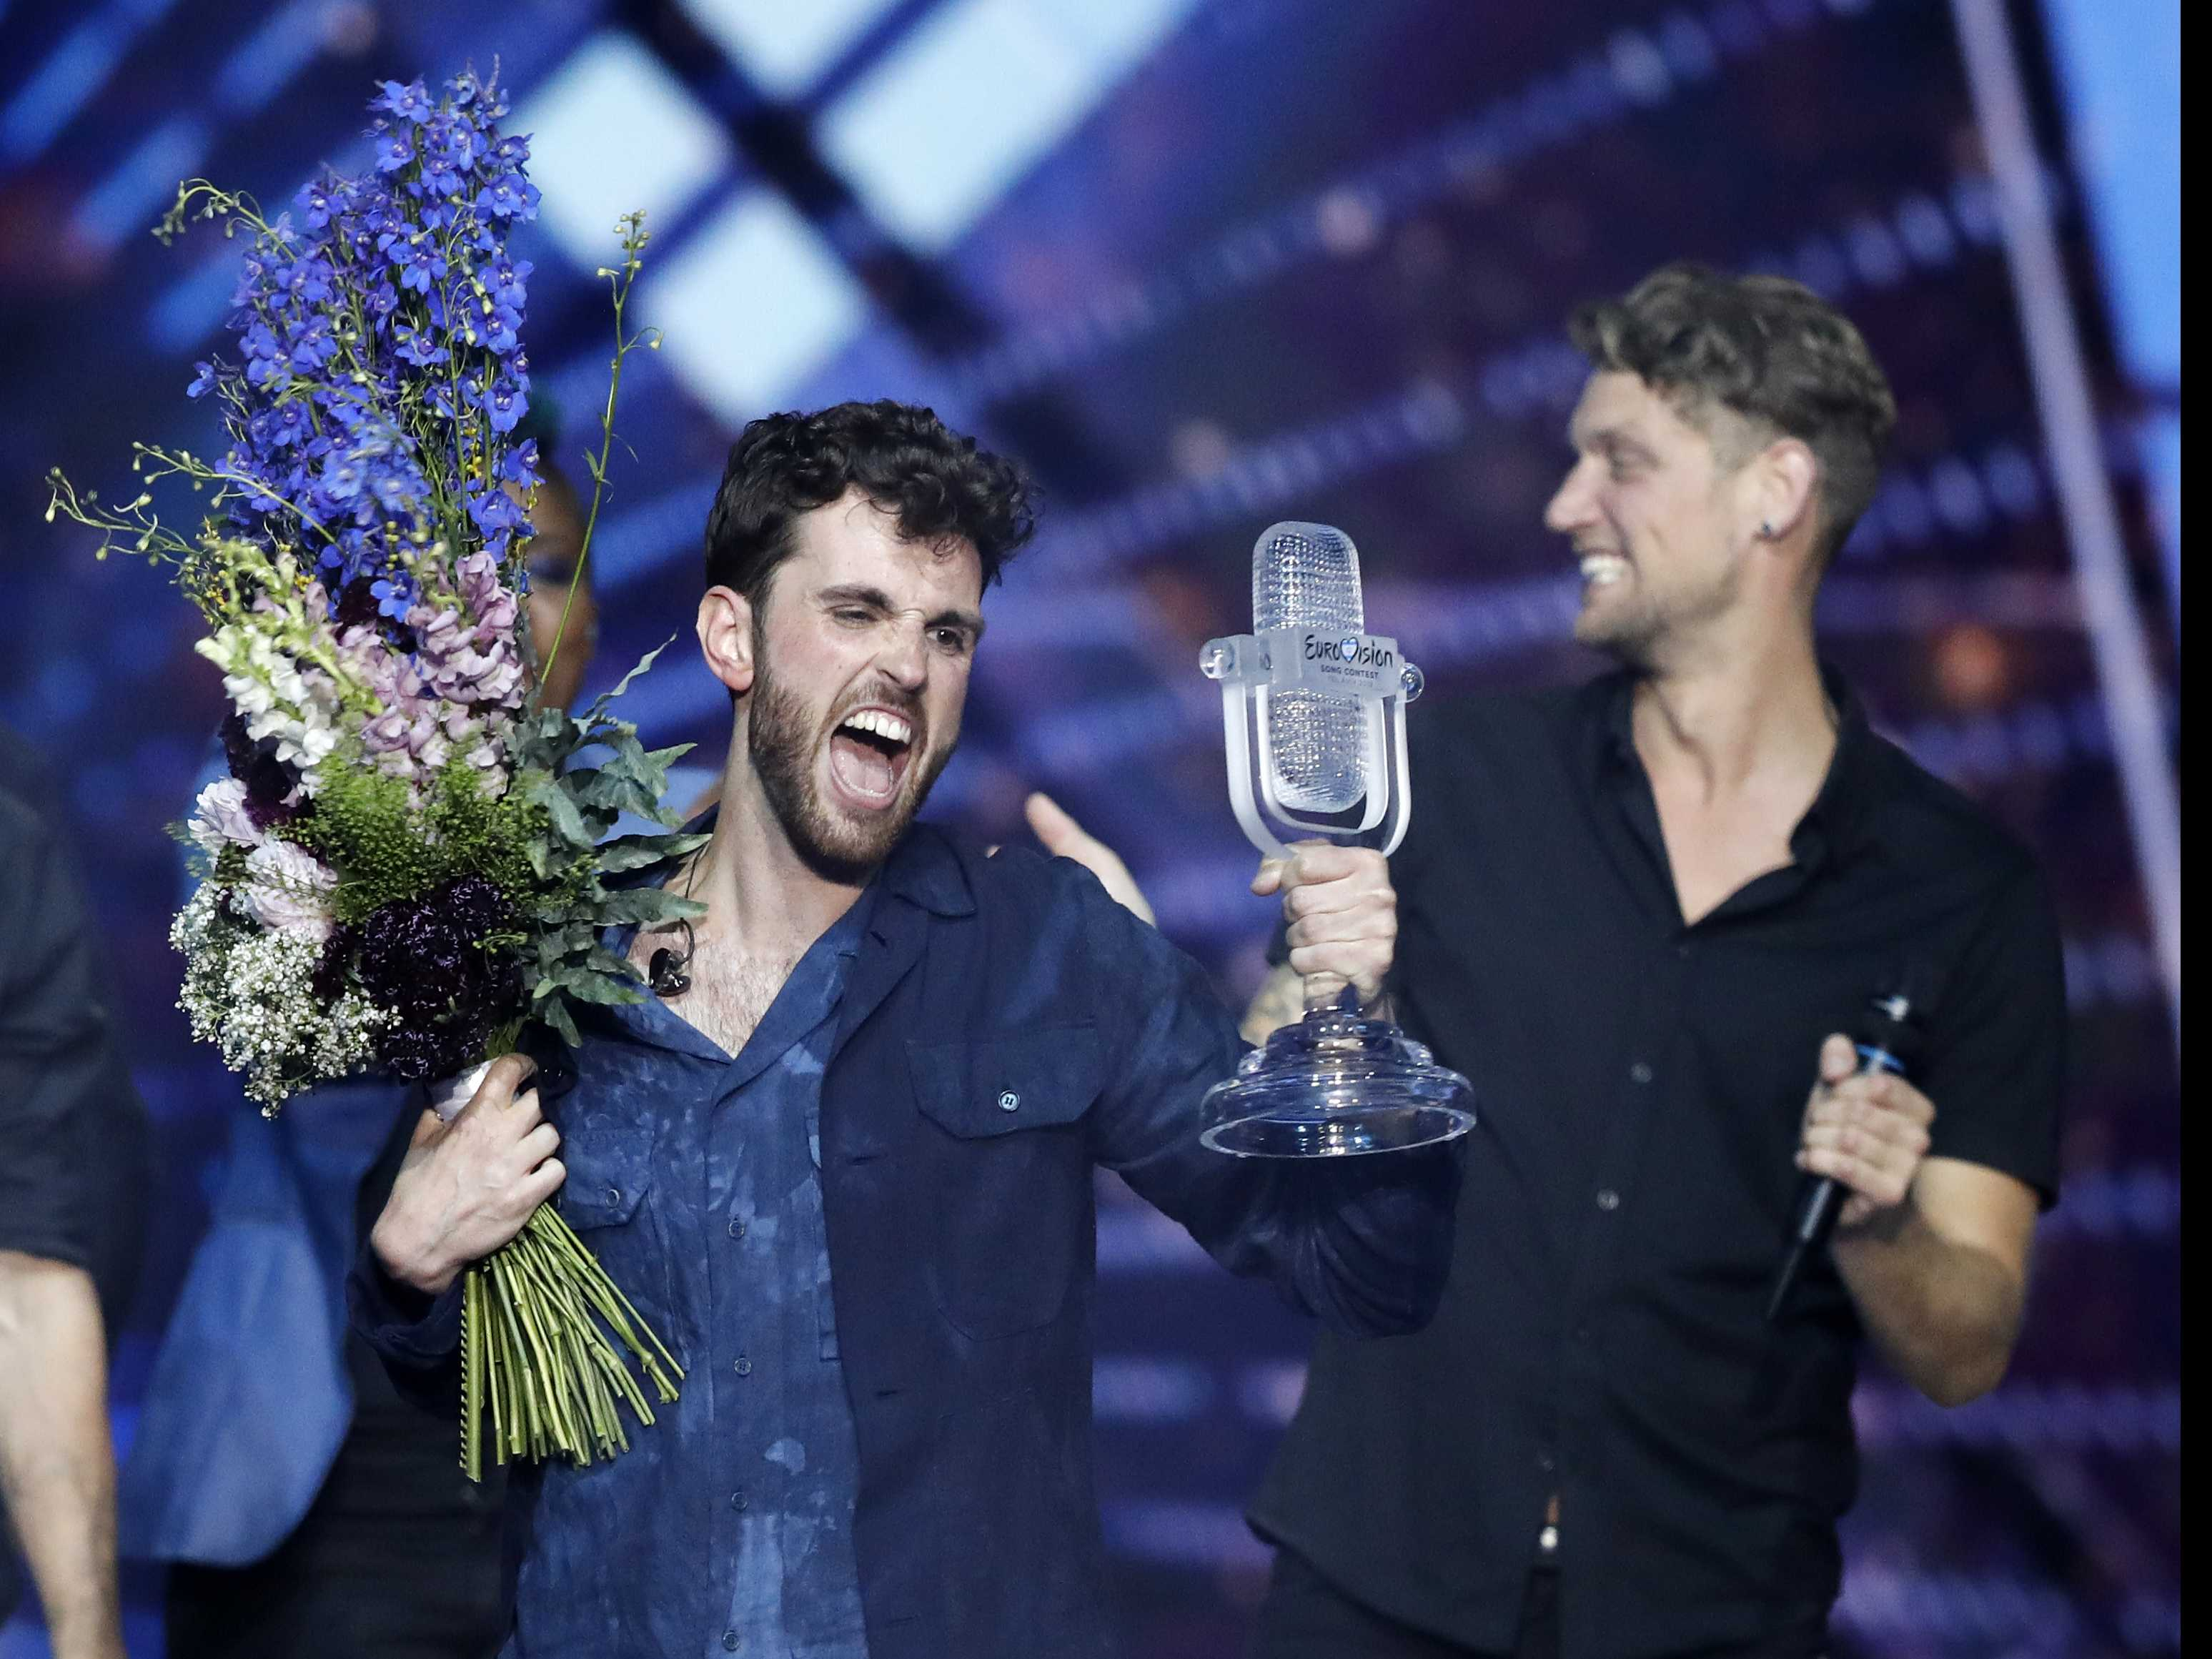 The Netherlands Wins Eurovision Song Contest in Tel Aviv